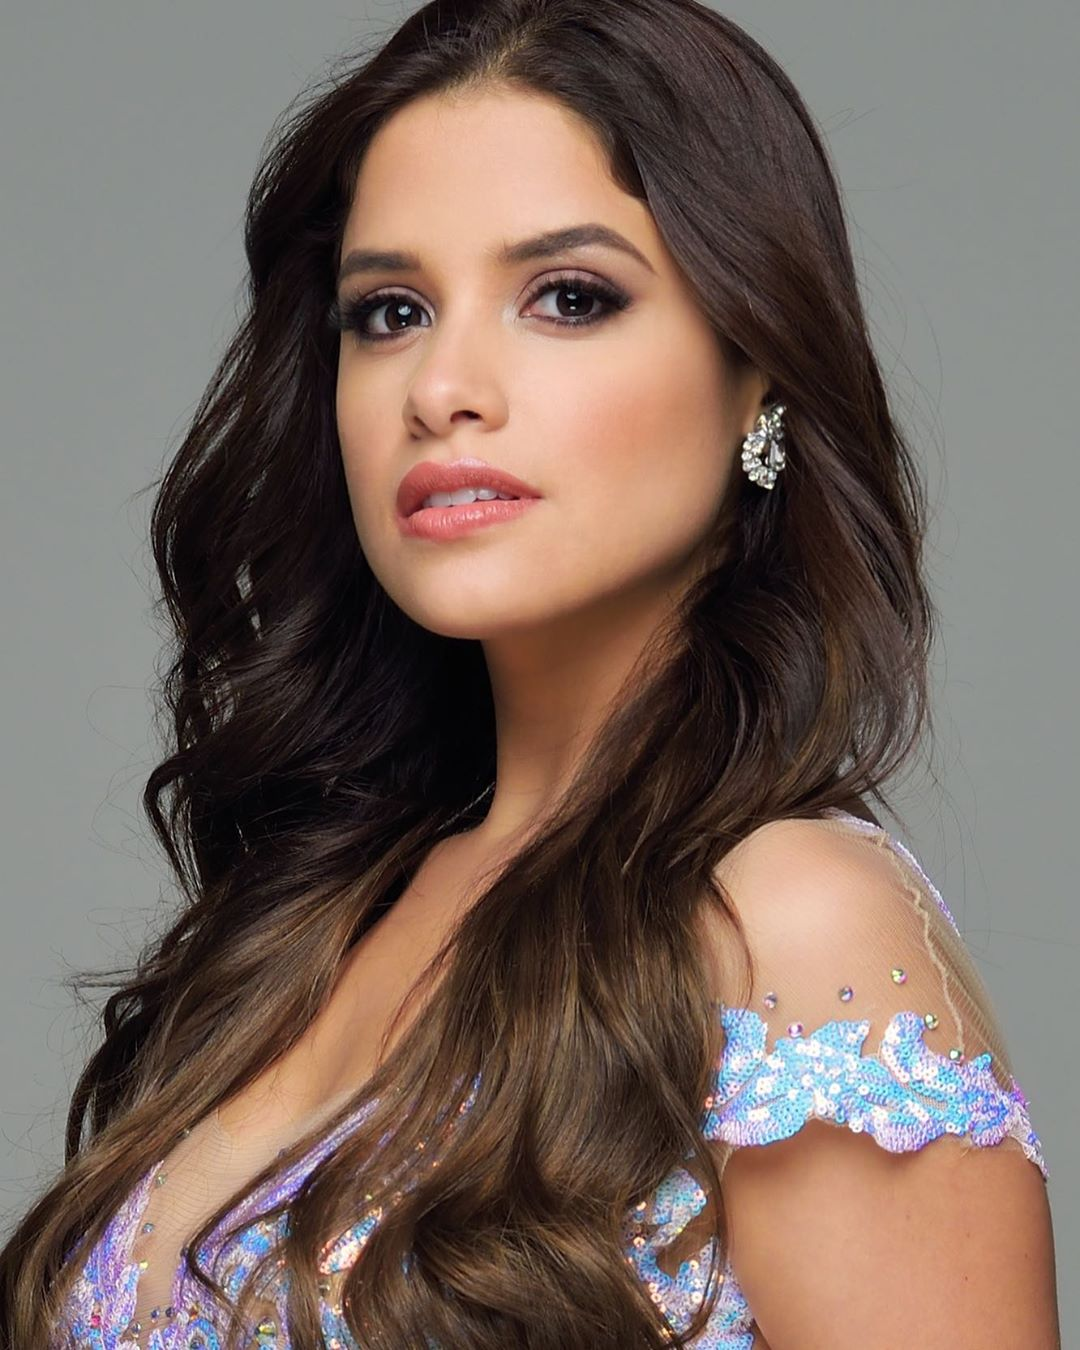 angella escudero, miss world peru 2019. 74694911